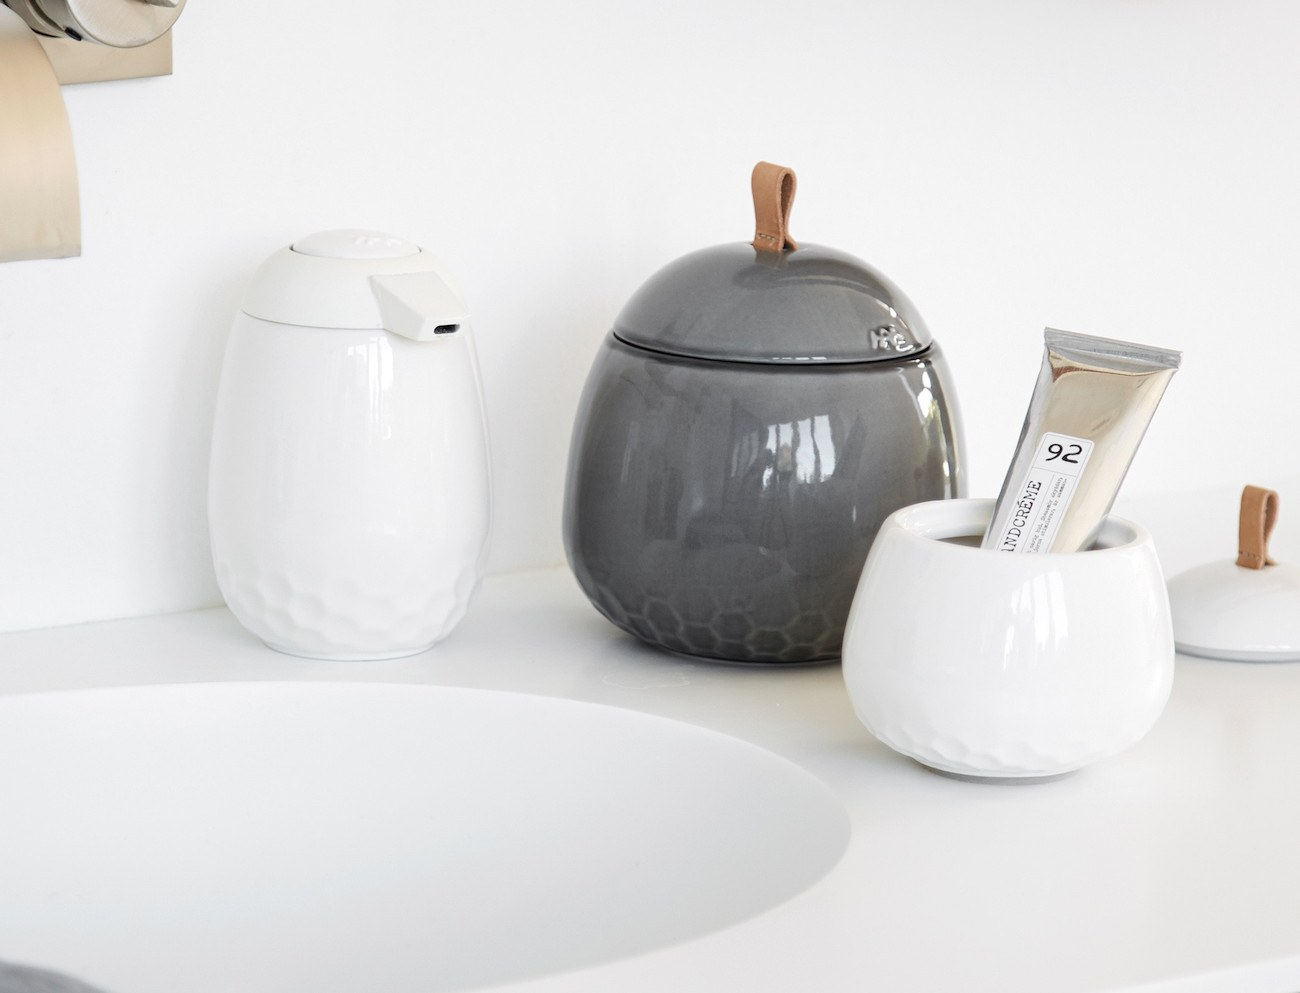 Kahler Mellibi Porcelain Bathroom Storage Jar